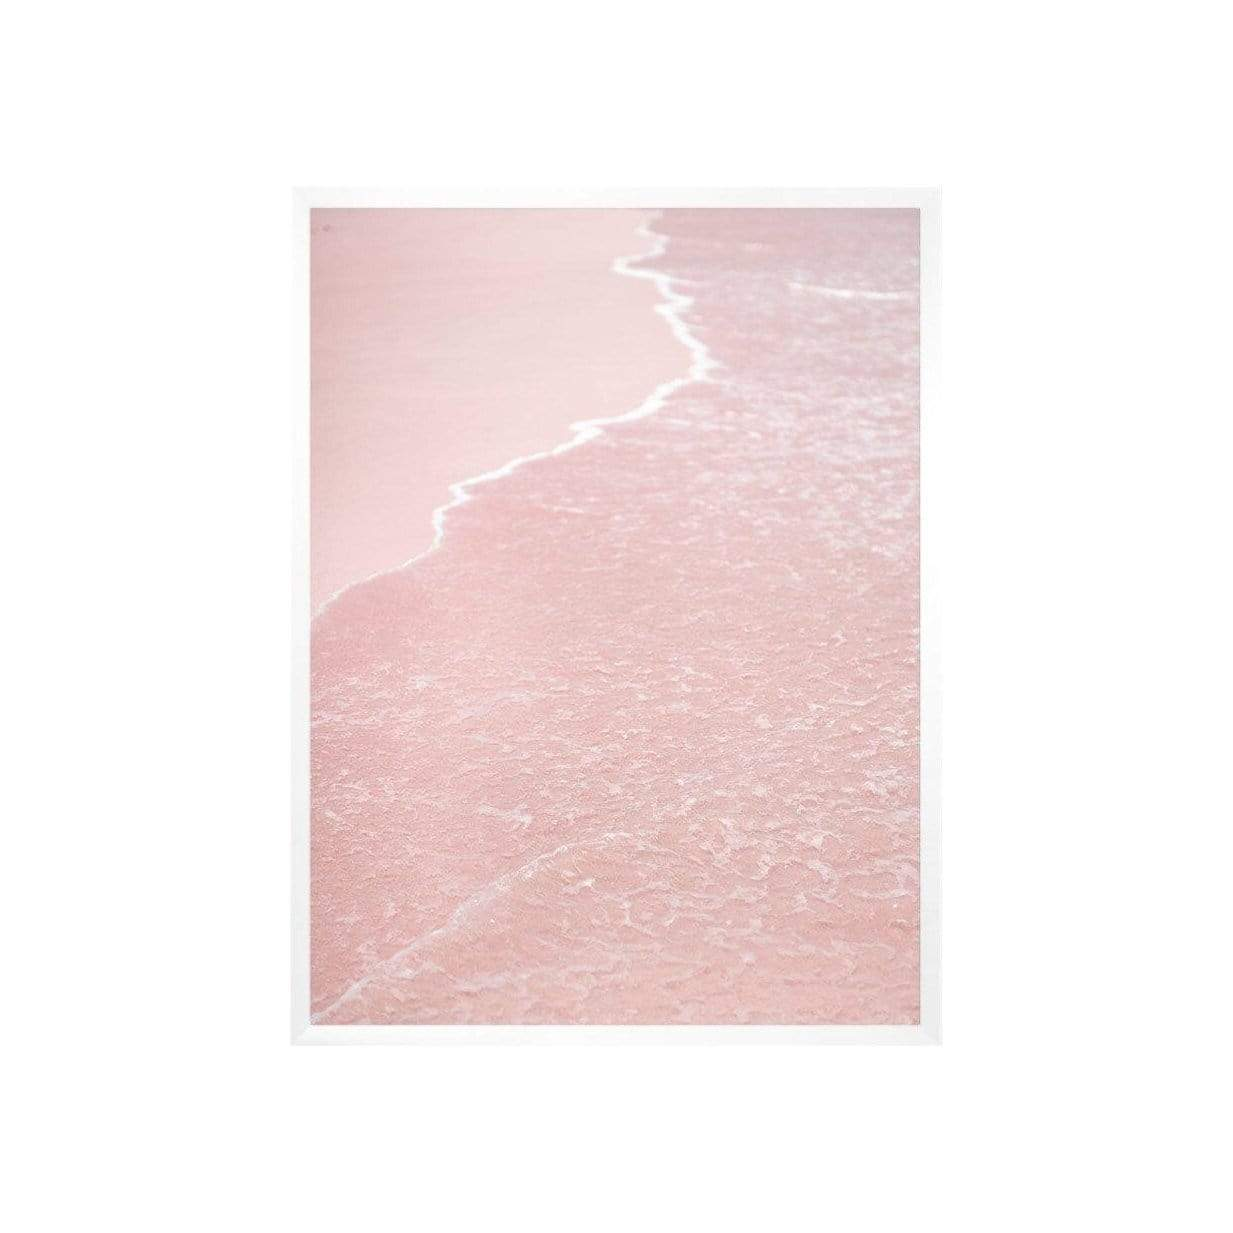 Carley Rudd Photography + Prints 8 x 10 / white frame, no mat Pink Sands Indonesia Print